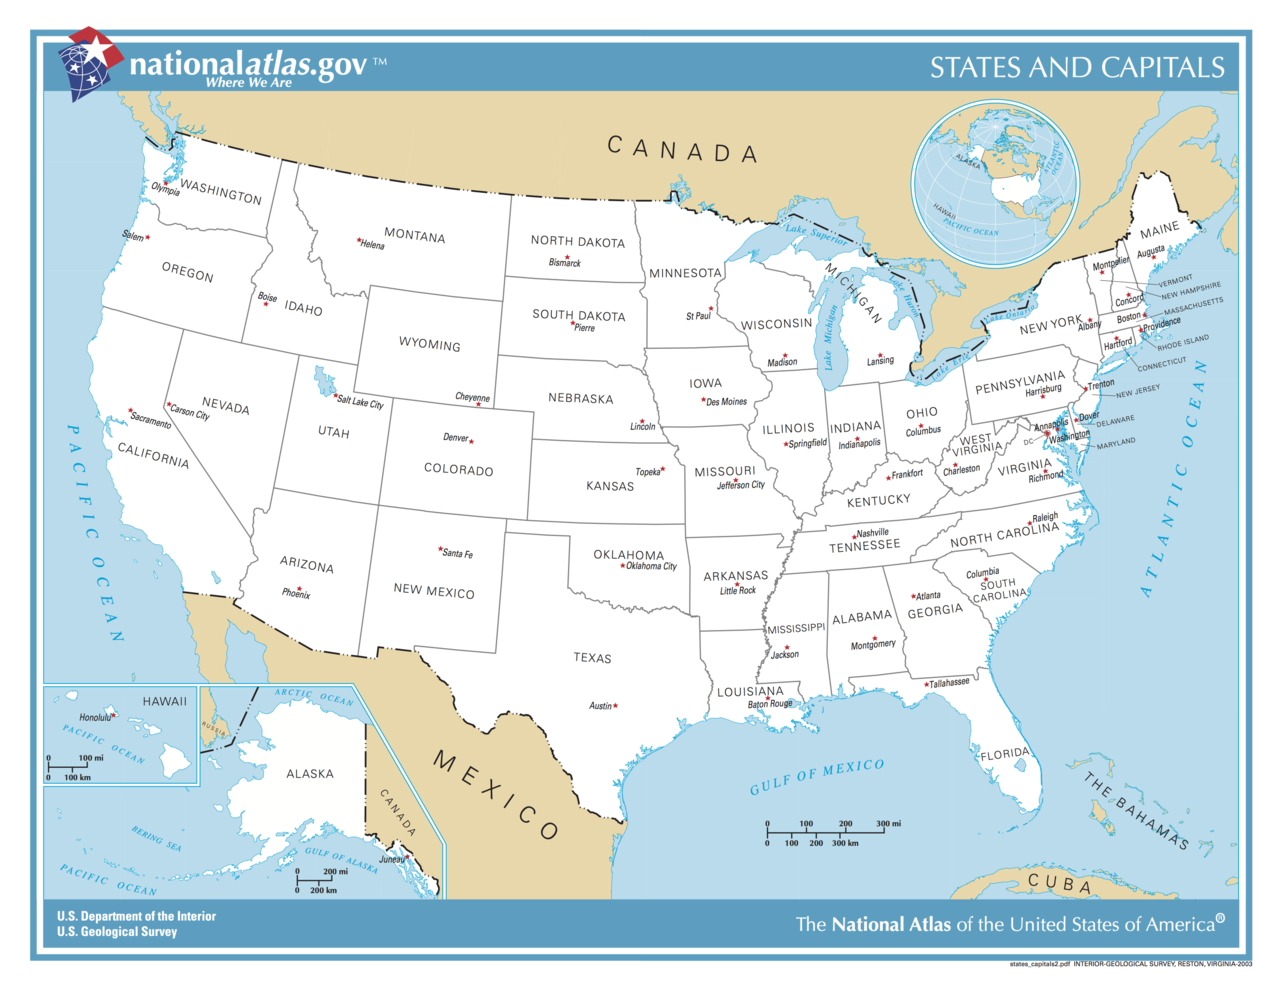 USA Map States And Capitals Map Of United States With Capitals - Eastern us road maps with states and cities